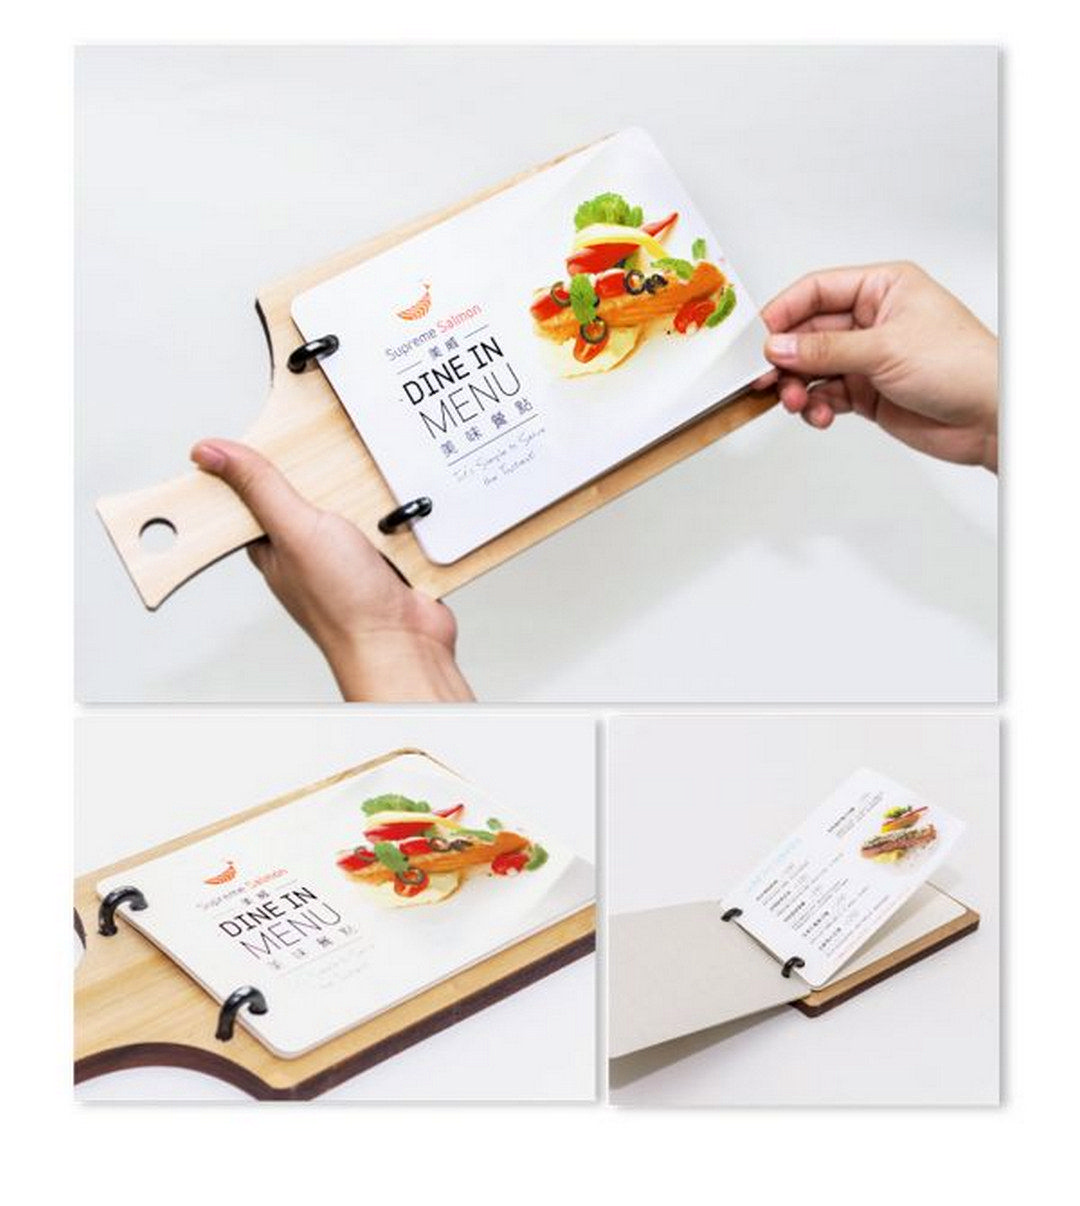 46 creative restaurant menus designs https://www.designlisticle